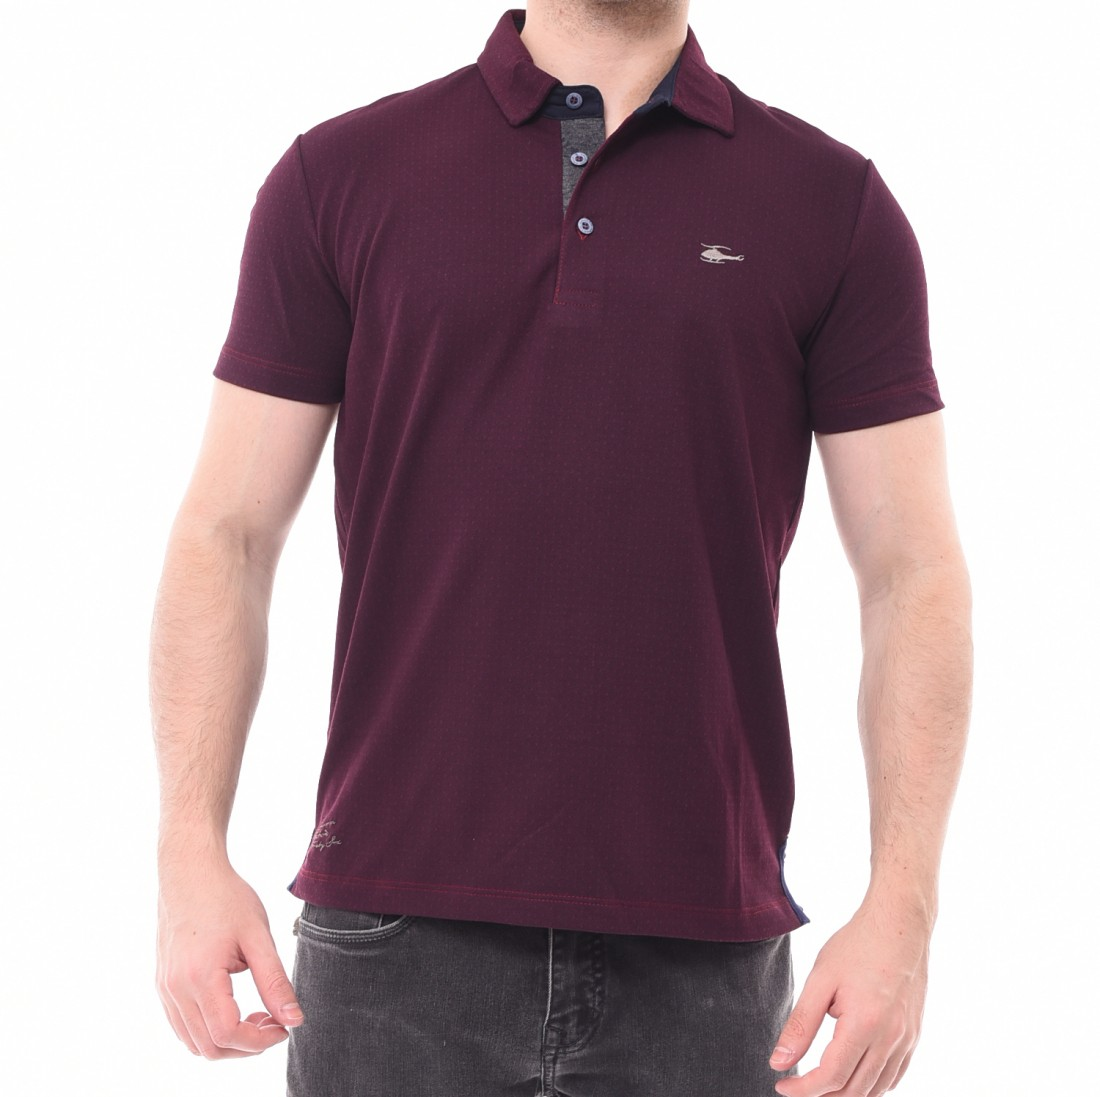 Camisa Polo Sallo Micro Estampa Piquet Bordô - LM Martins - Veste ... da0f60ed5be14